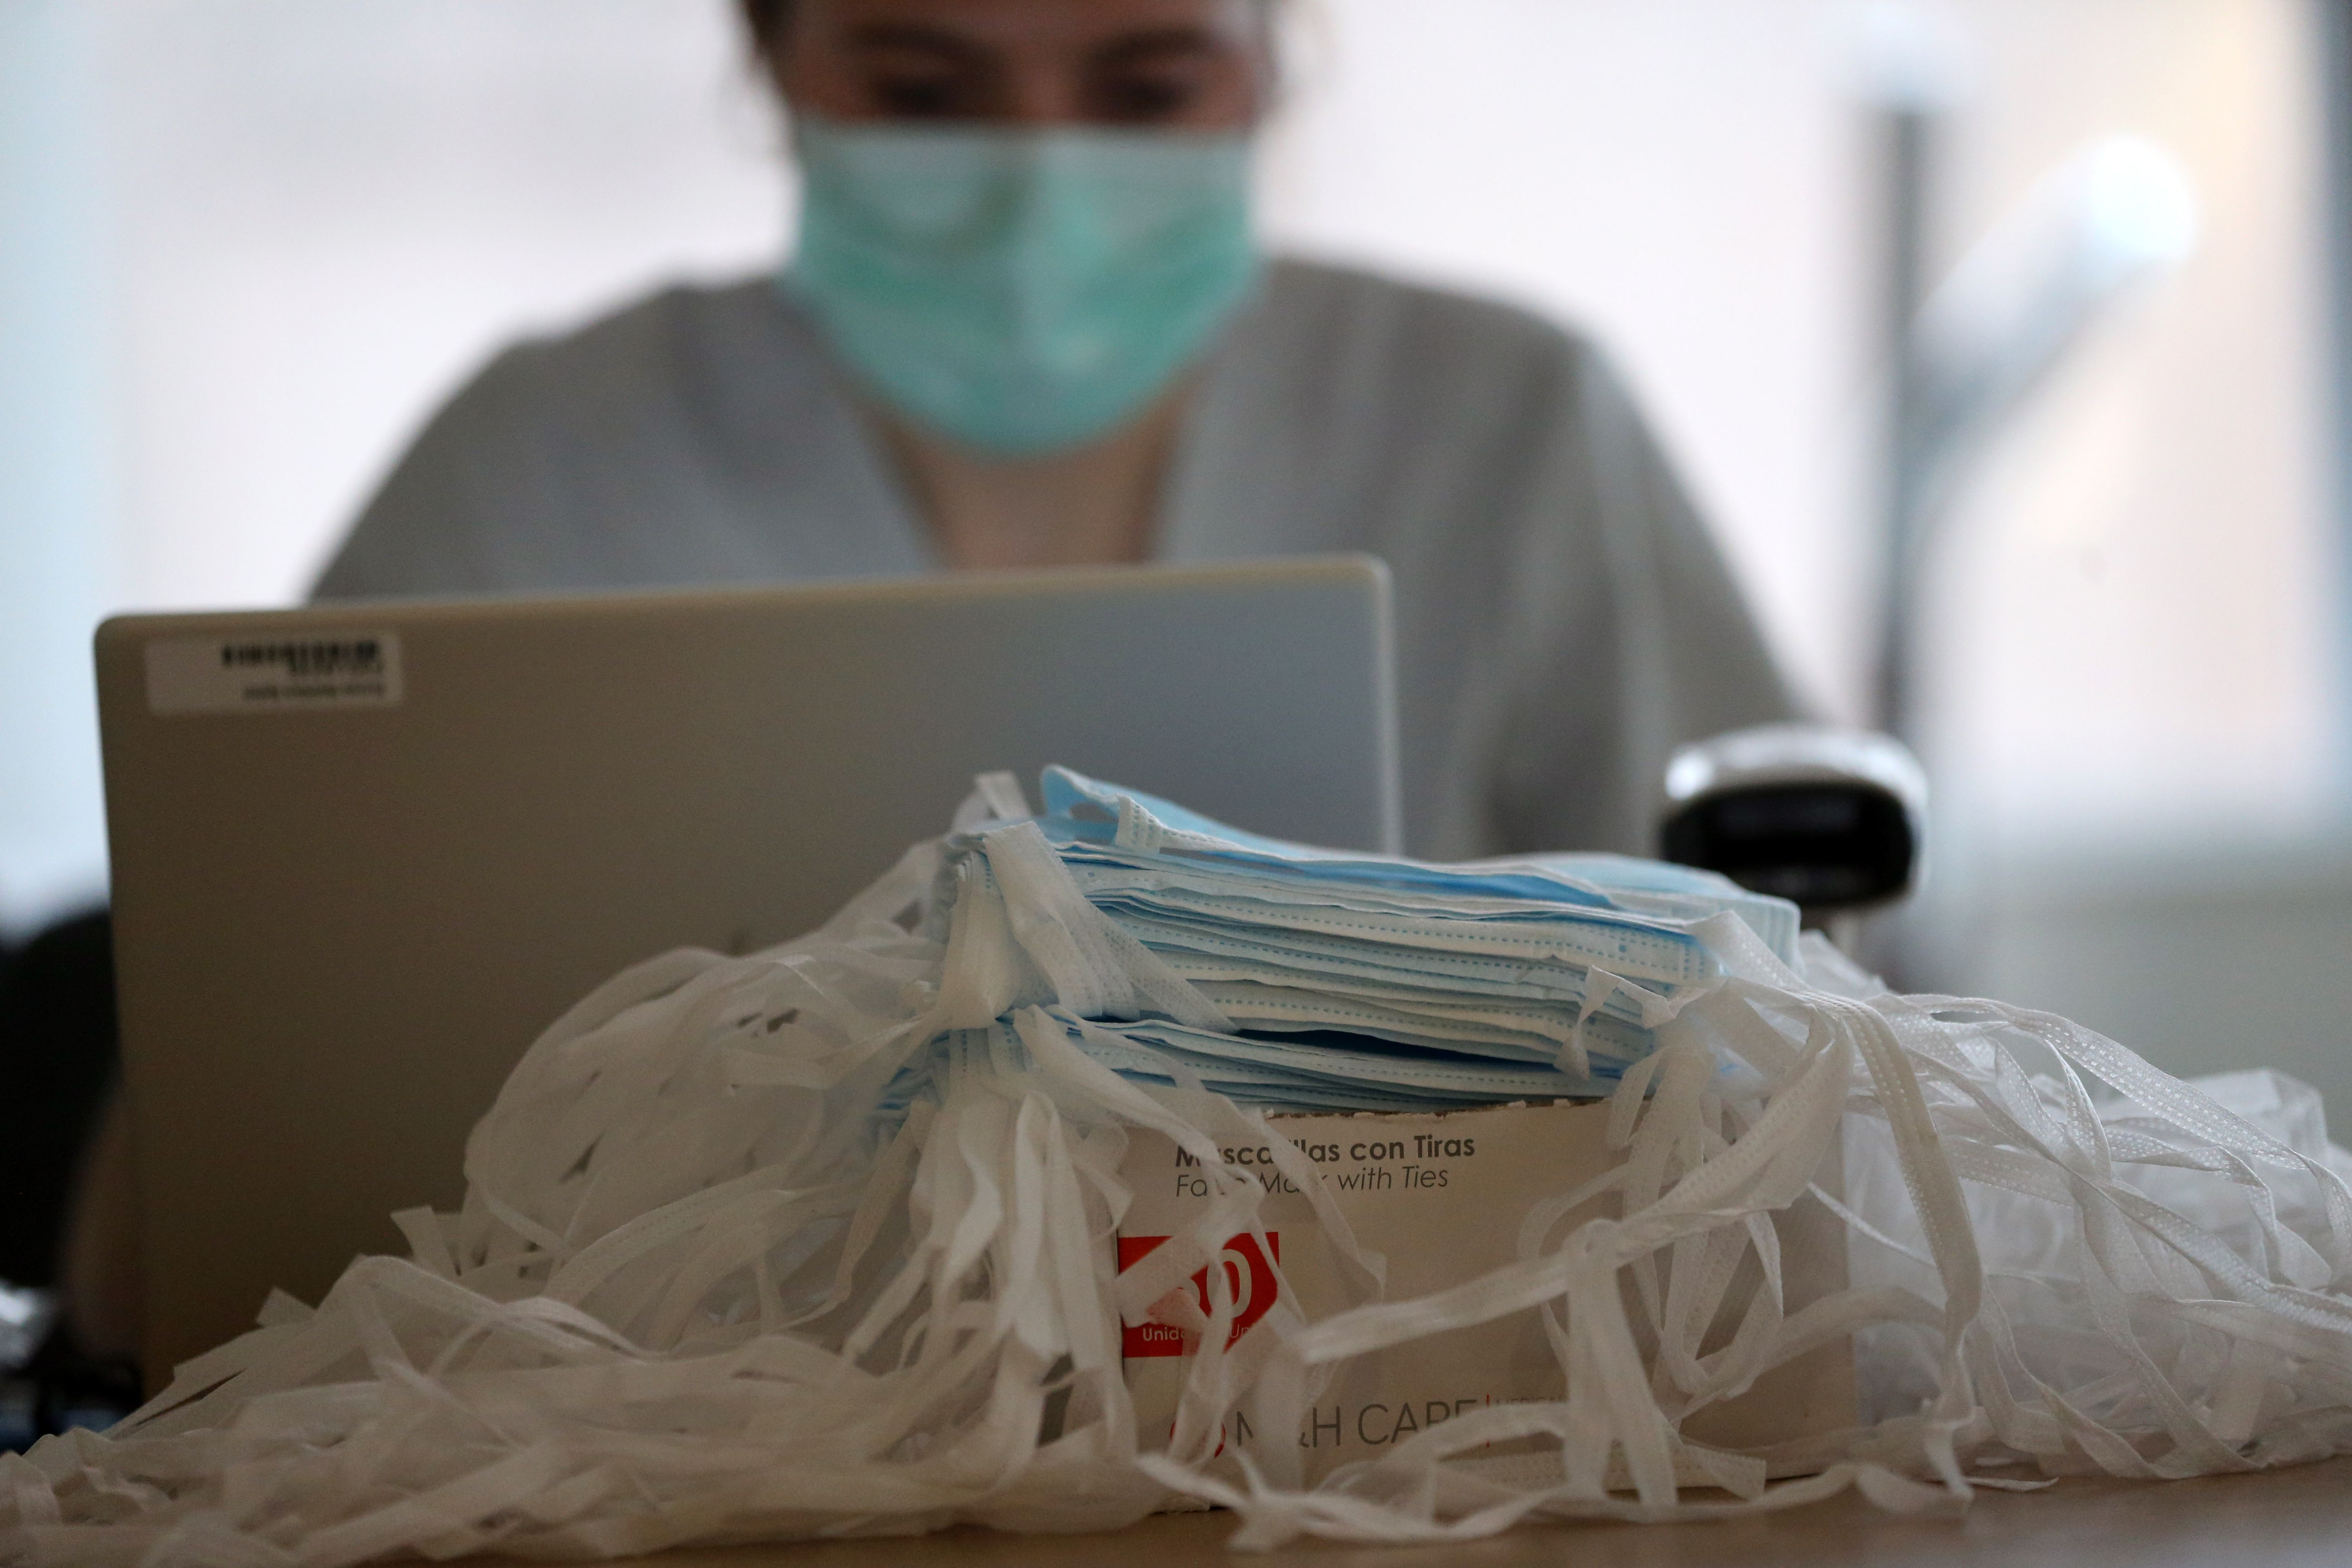 Desperation and chaos dominate the global hunt for coronavirus personal protective equipment